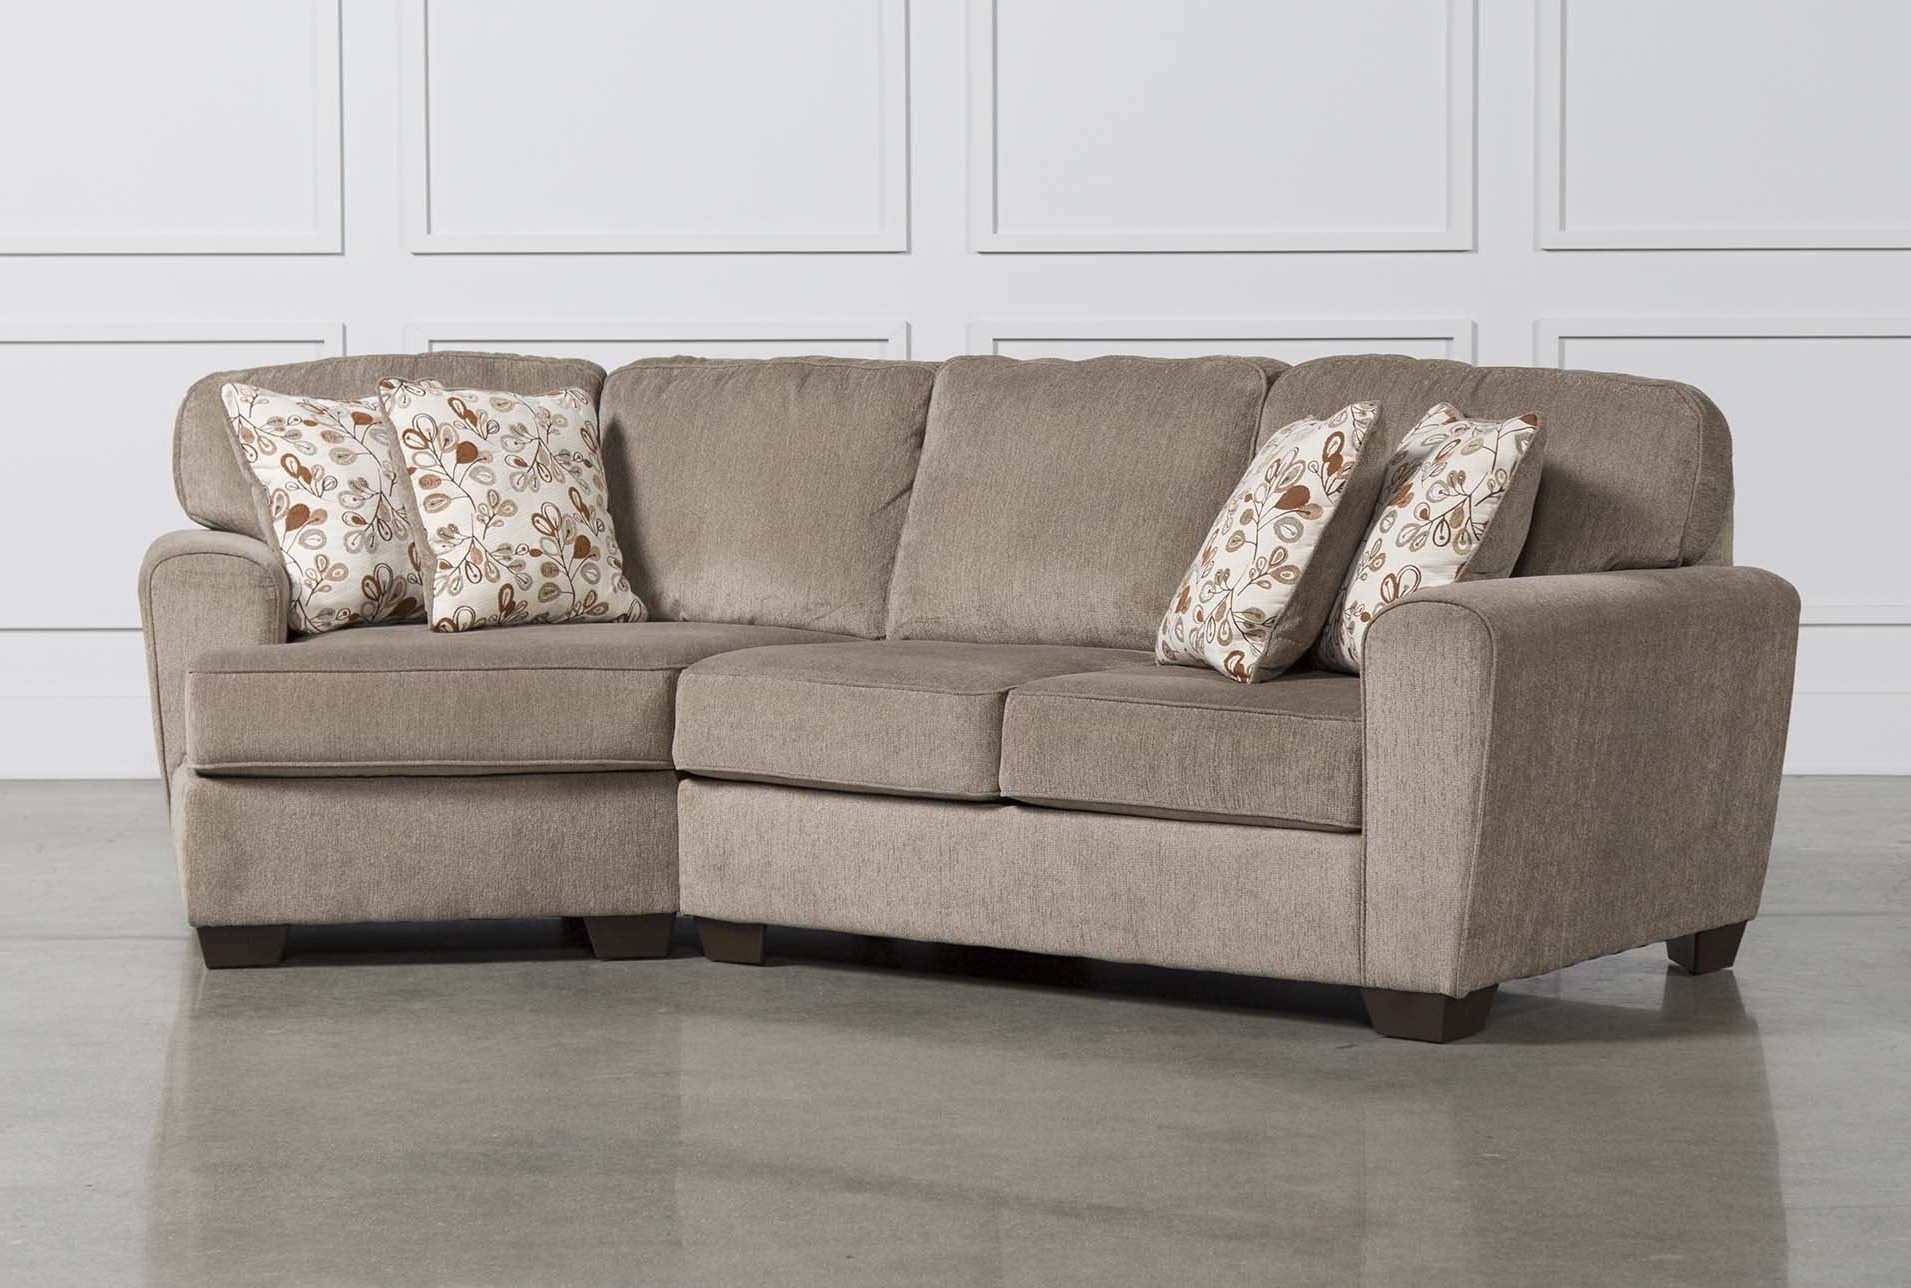 Beautiful Sectional Sofa With A Cuddler – Mediasupload In Fashionable Cuddler Sectional Sofas (View 11 of 20)